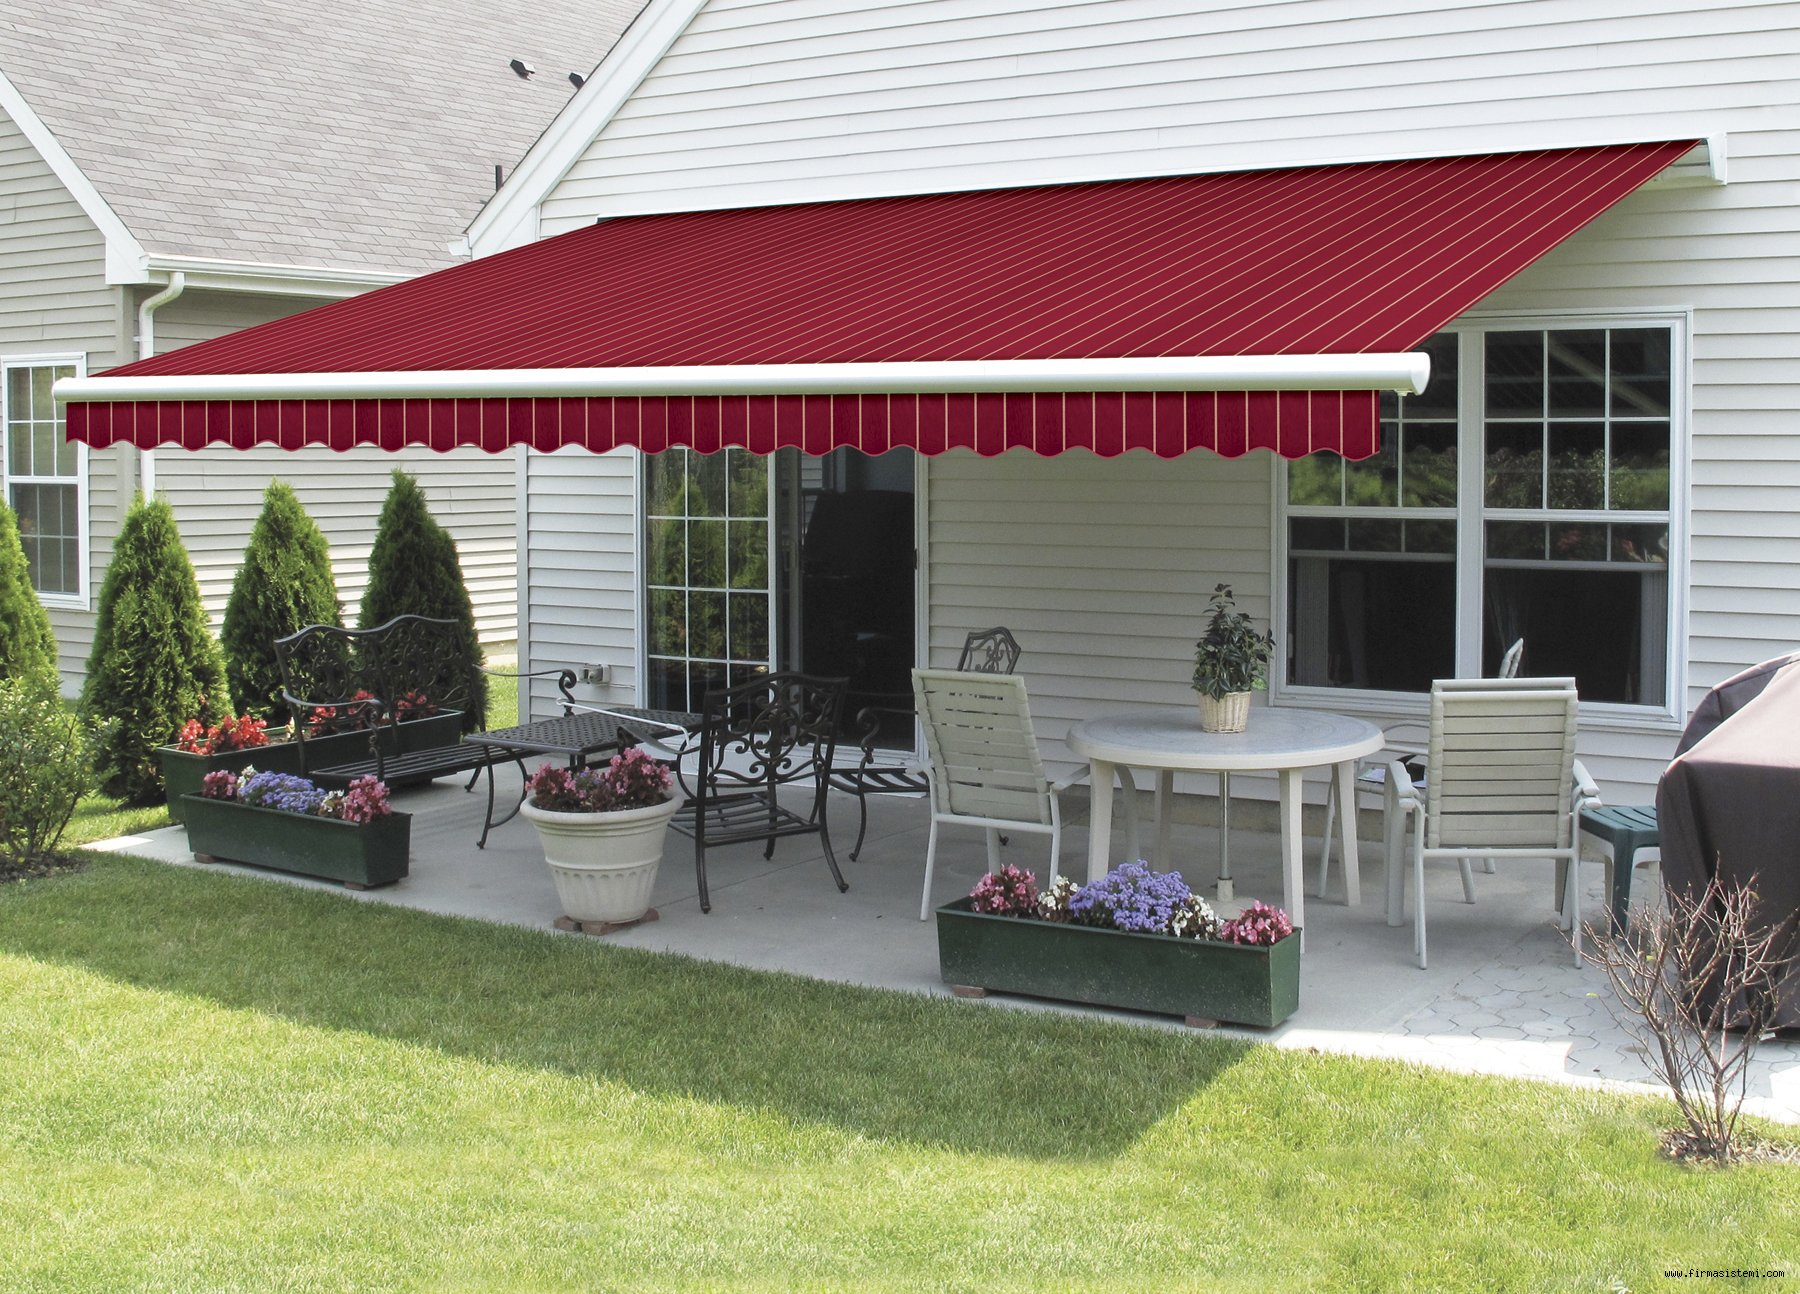 Awning Red